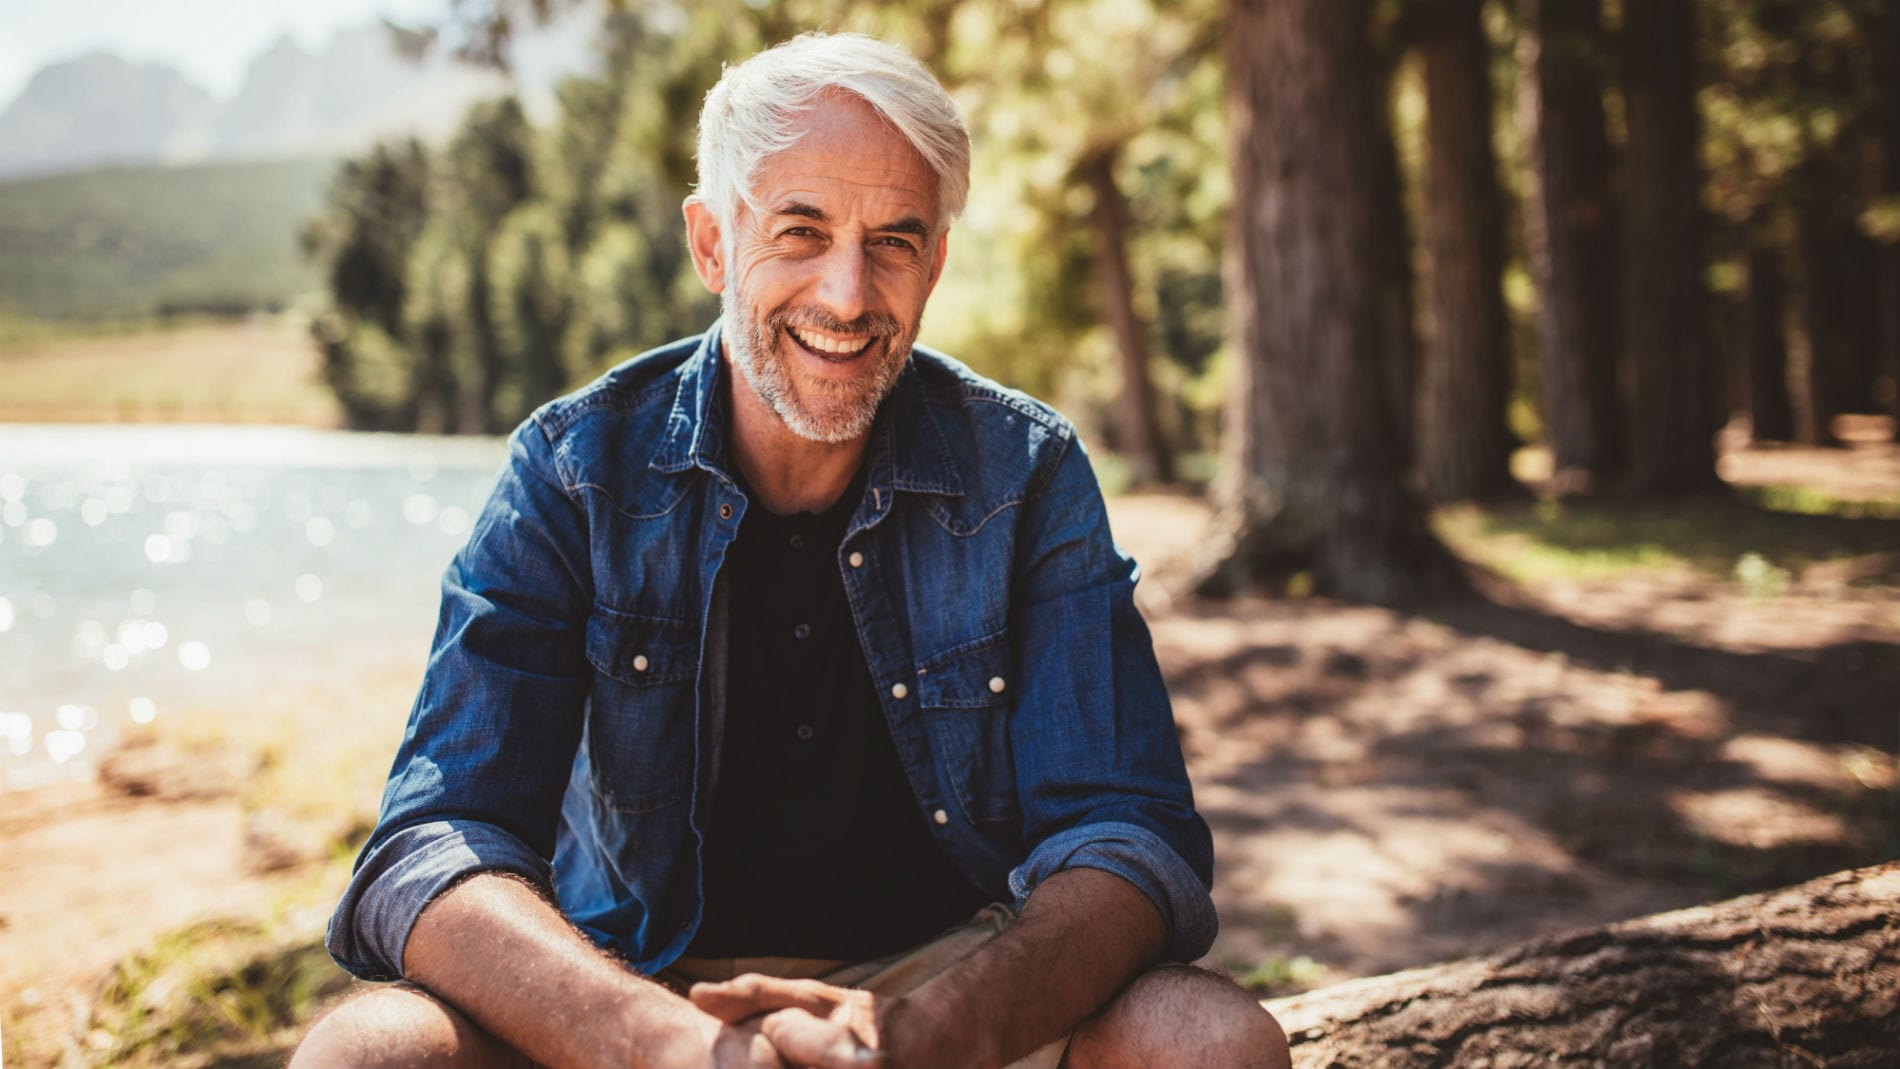 Ways Cataract Surgery Can Improve Your Quality of Life